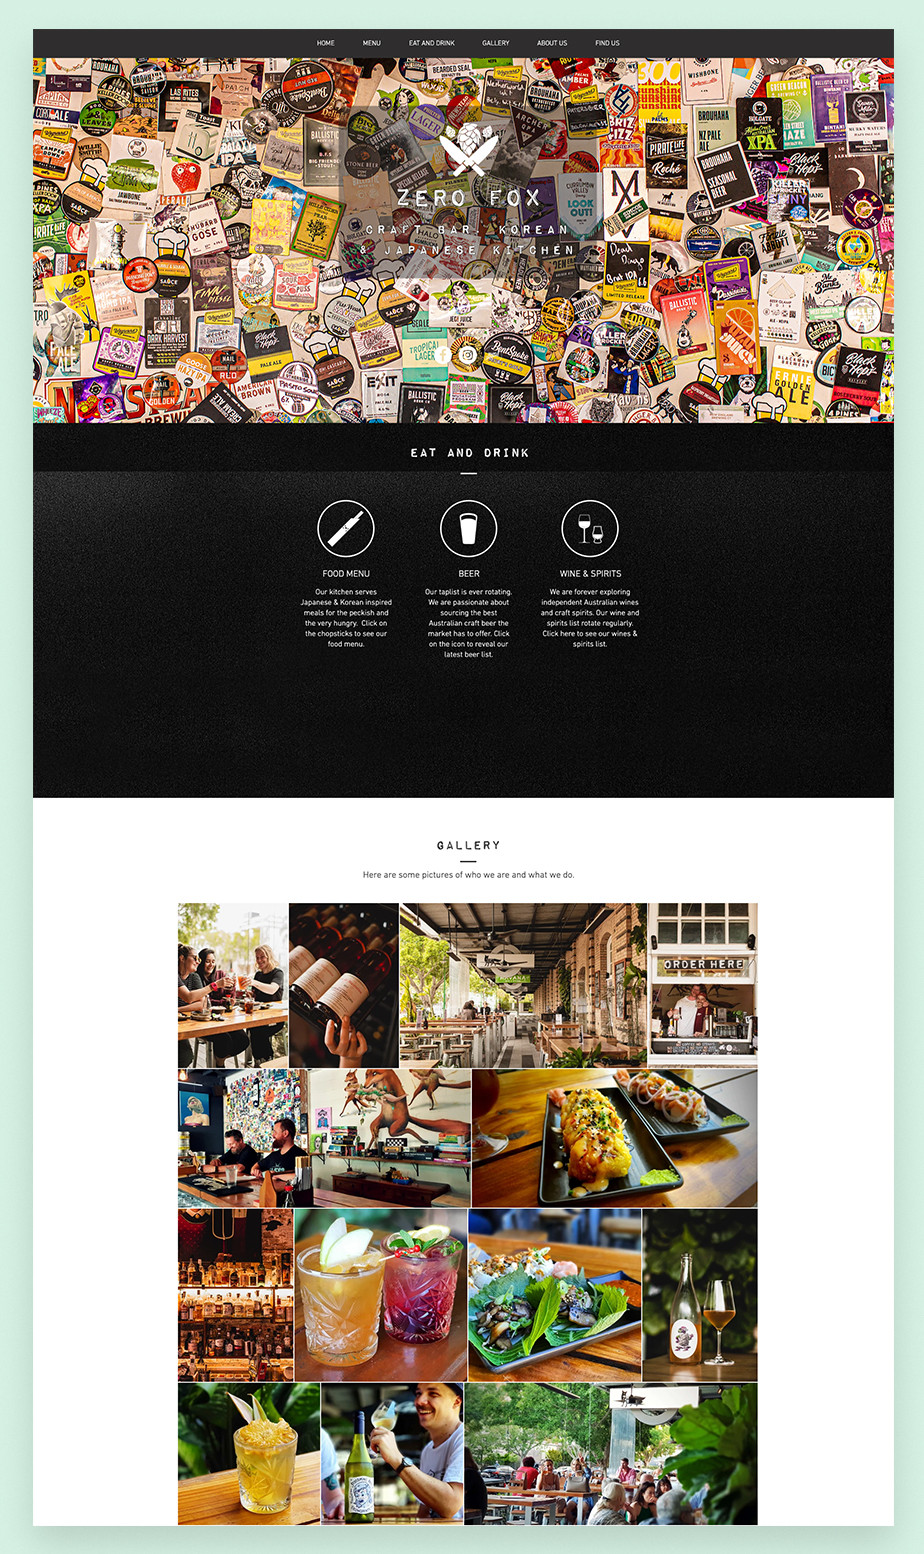 Zero Fox restaurant website